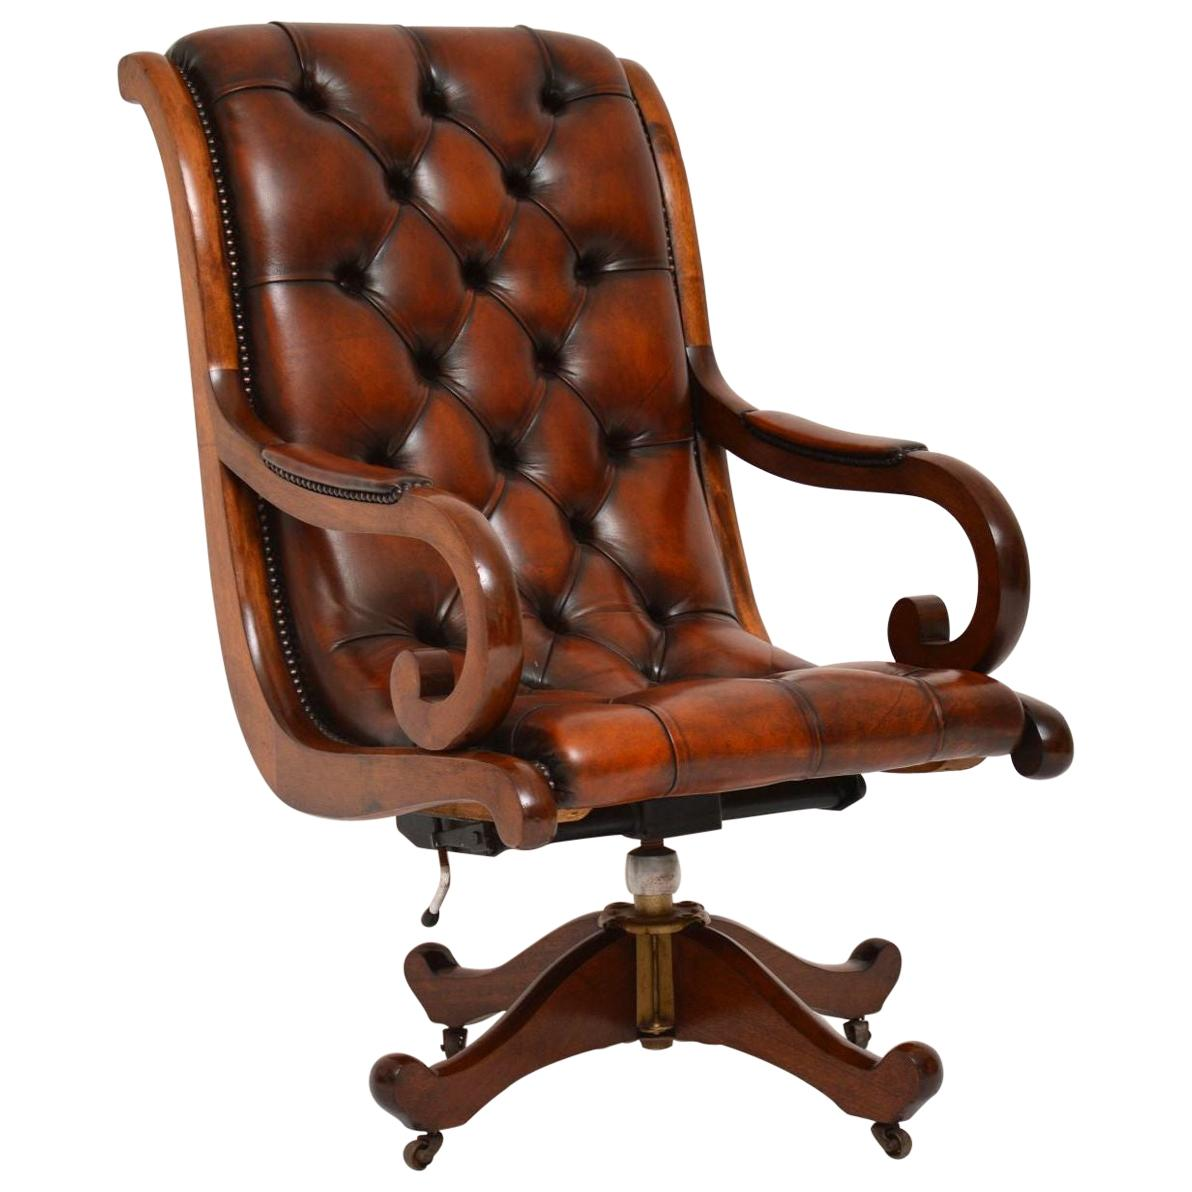 Admirable Antique Regency Style Leather And Mahogany Swivel Desk Chair Gamerscity Chair Design For Home Gamerscityorg